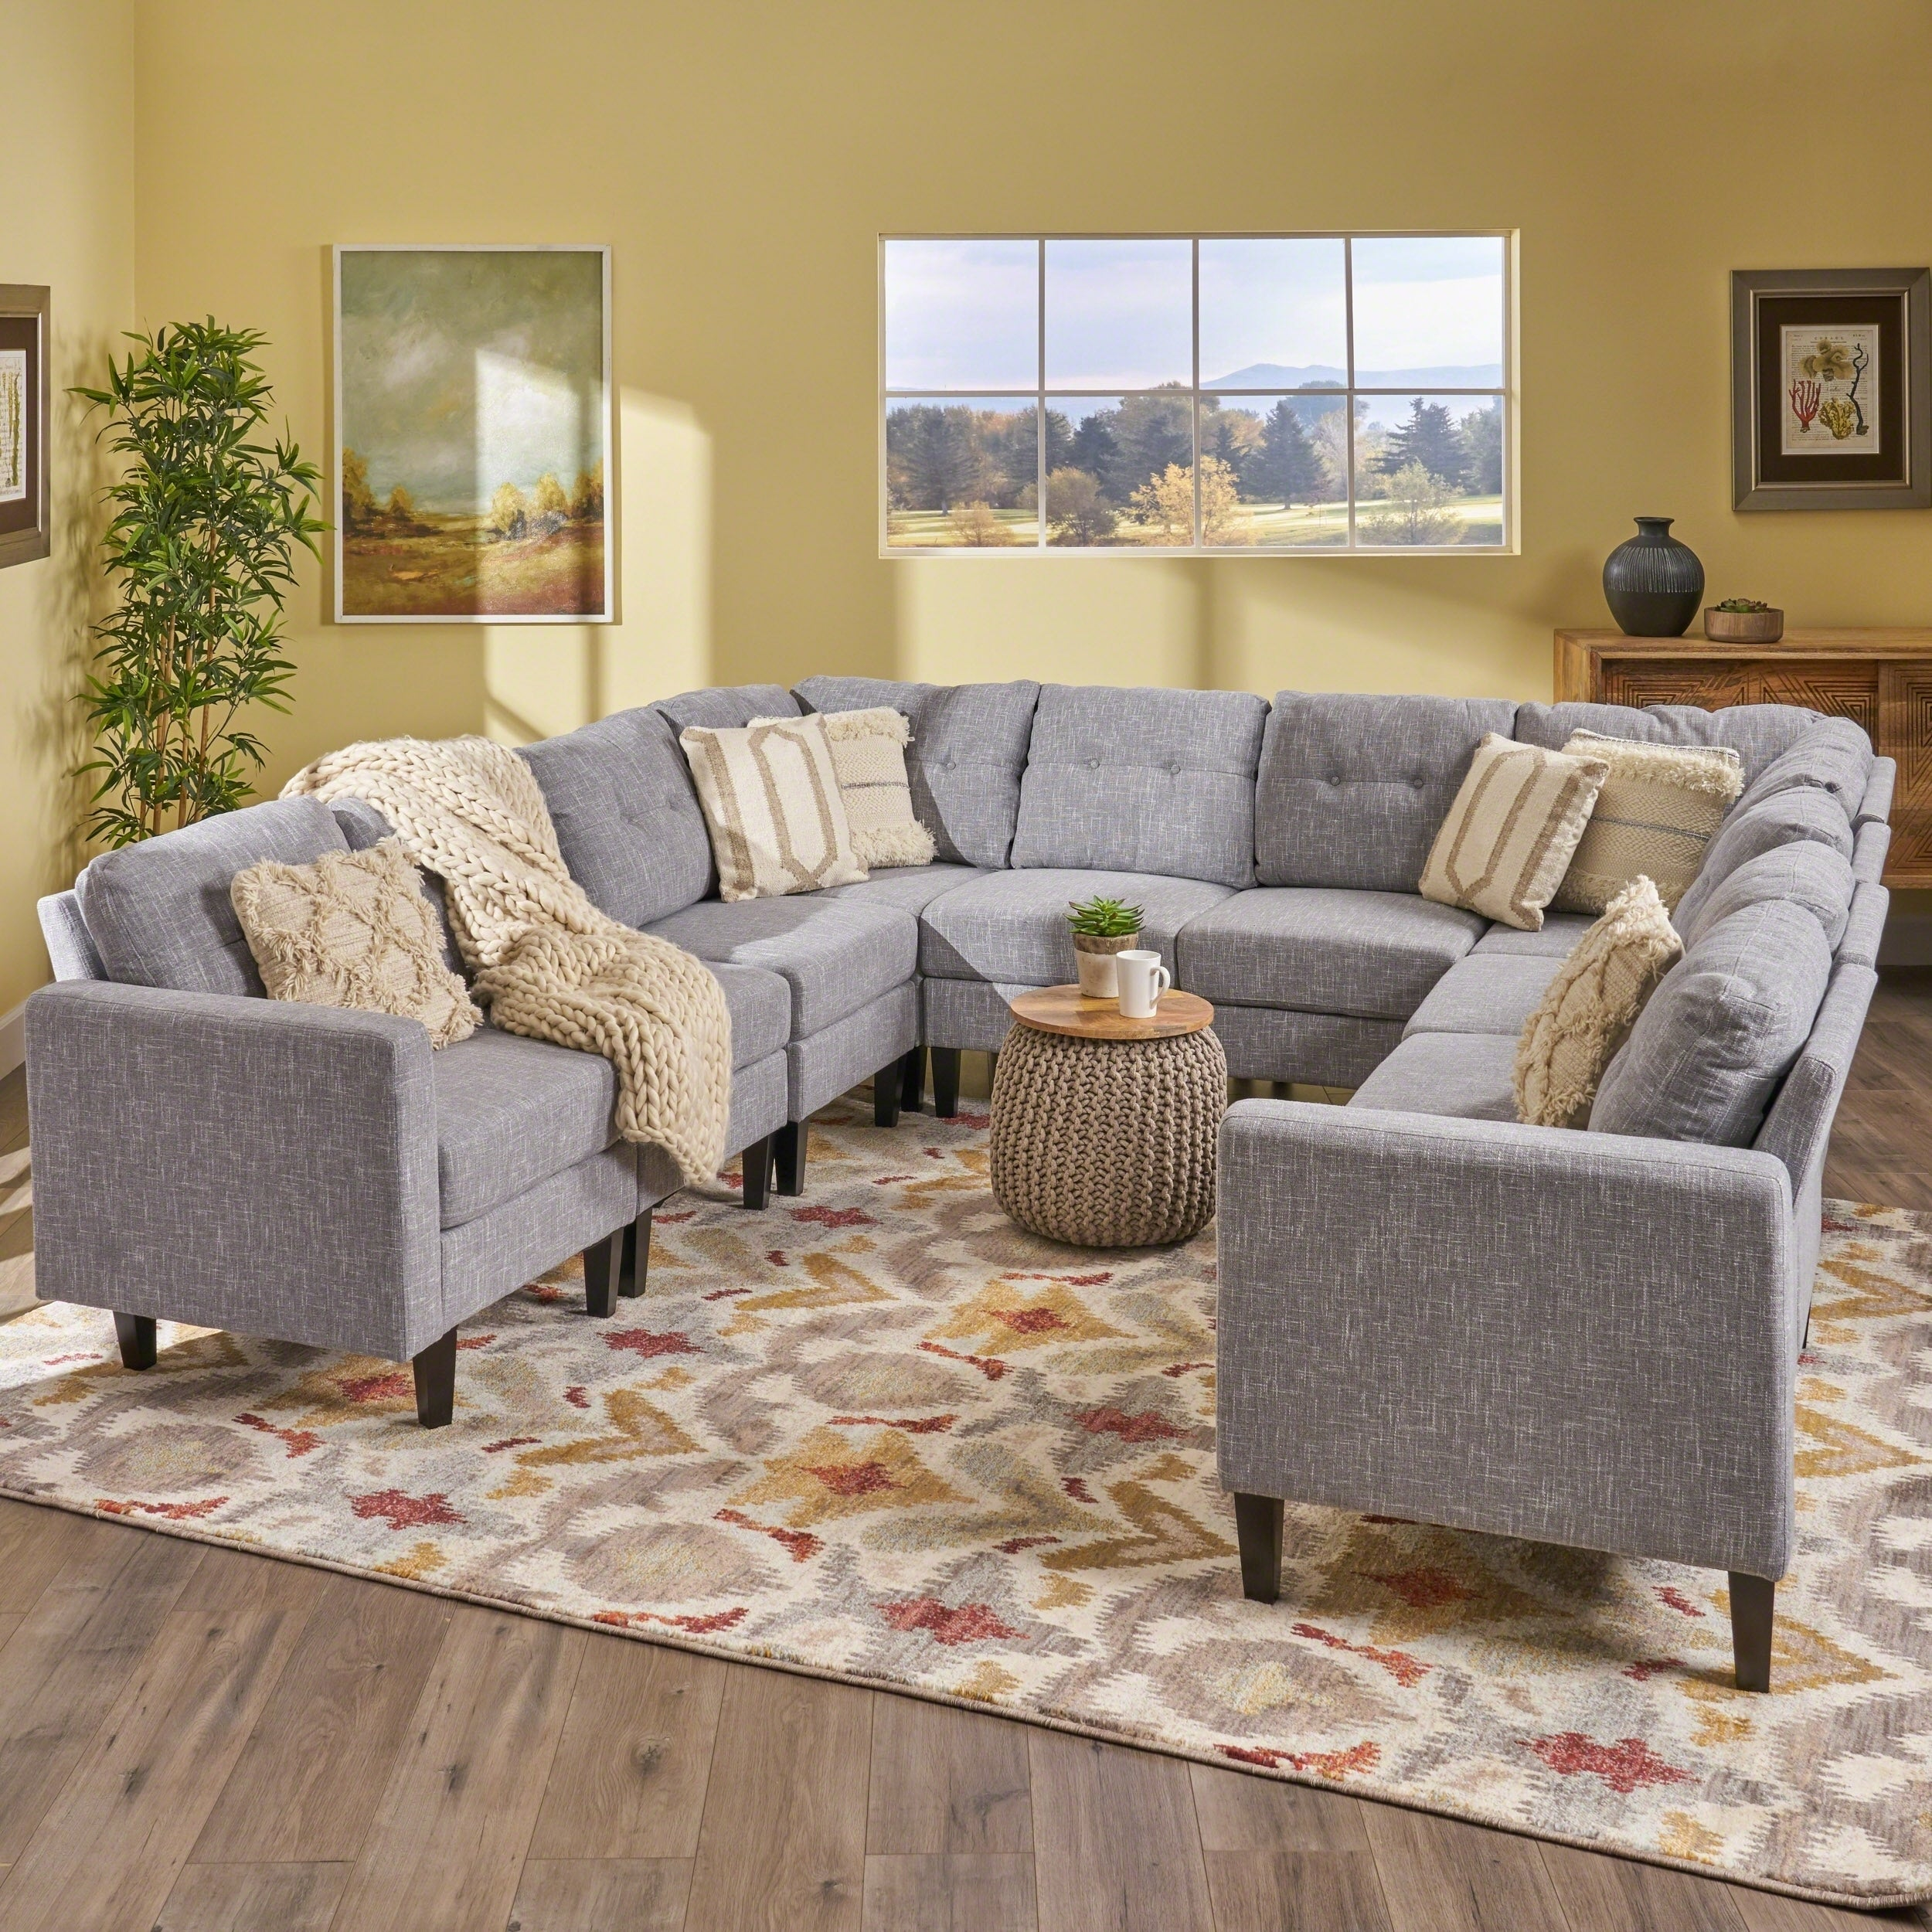 Delilah Mid Century Modern U Shaped Sectional Sofa Set Set 0f 10 By Christopher Knight Home